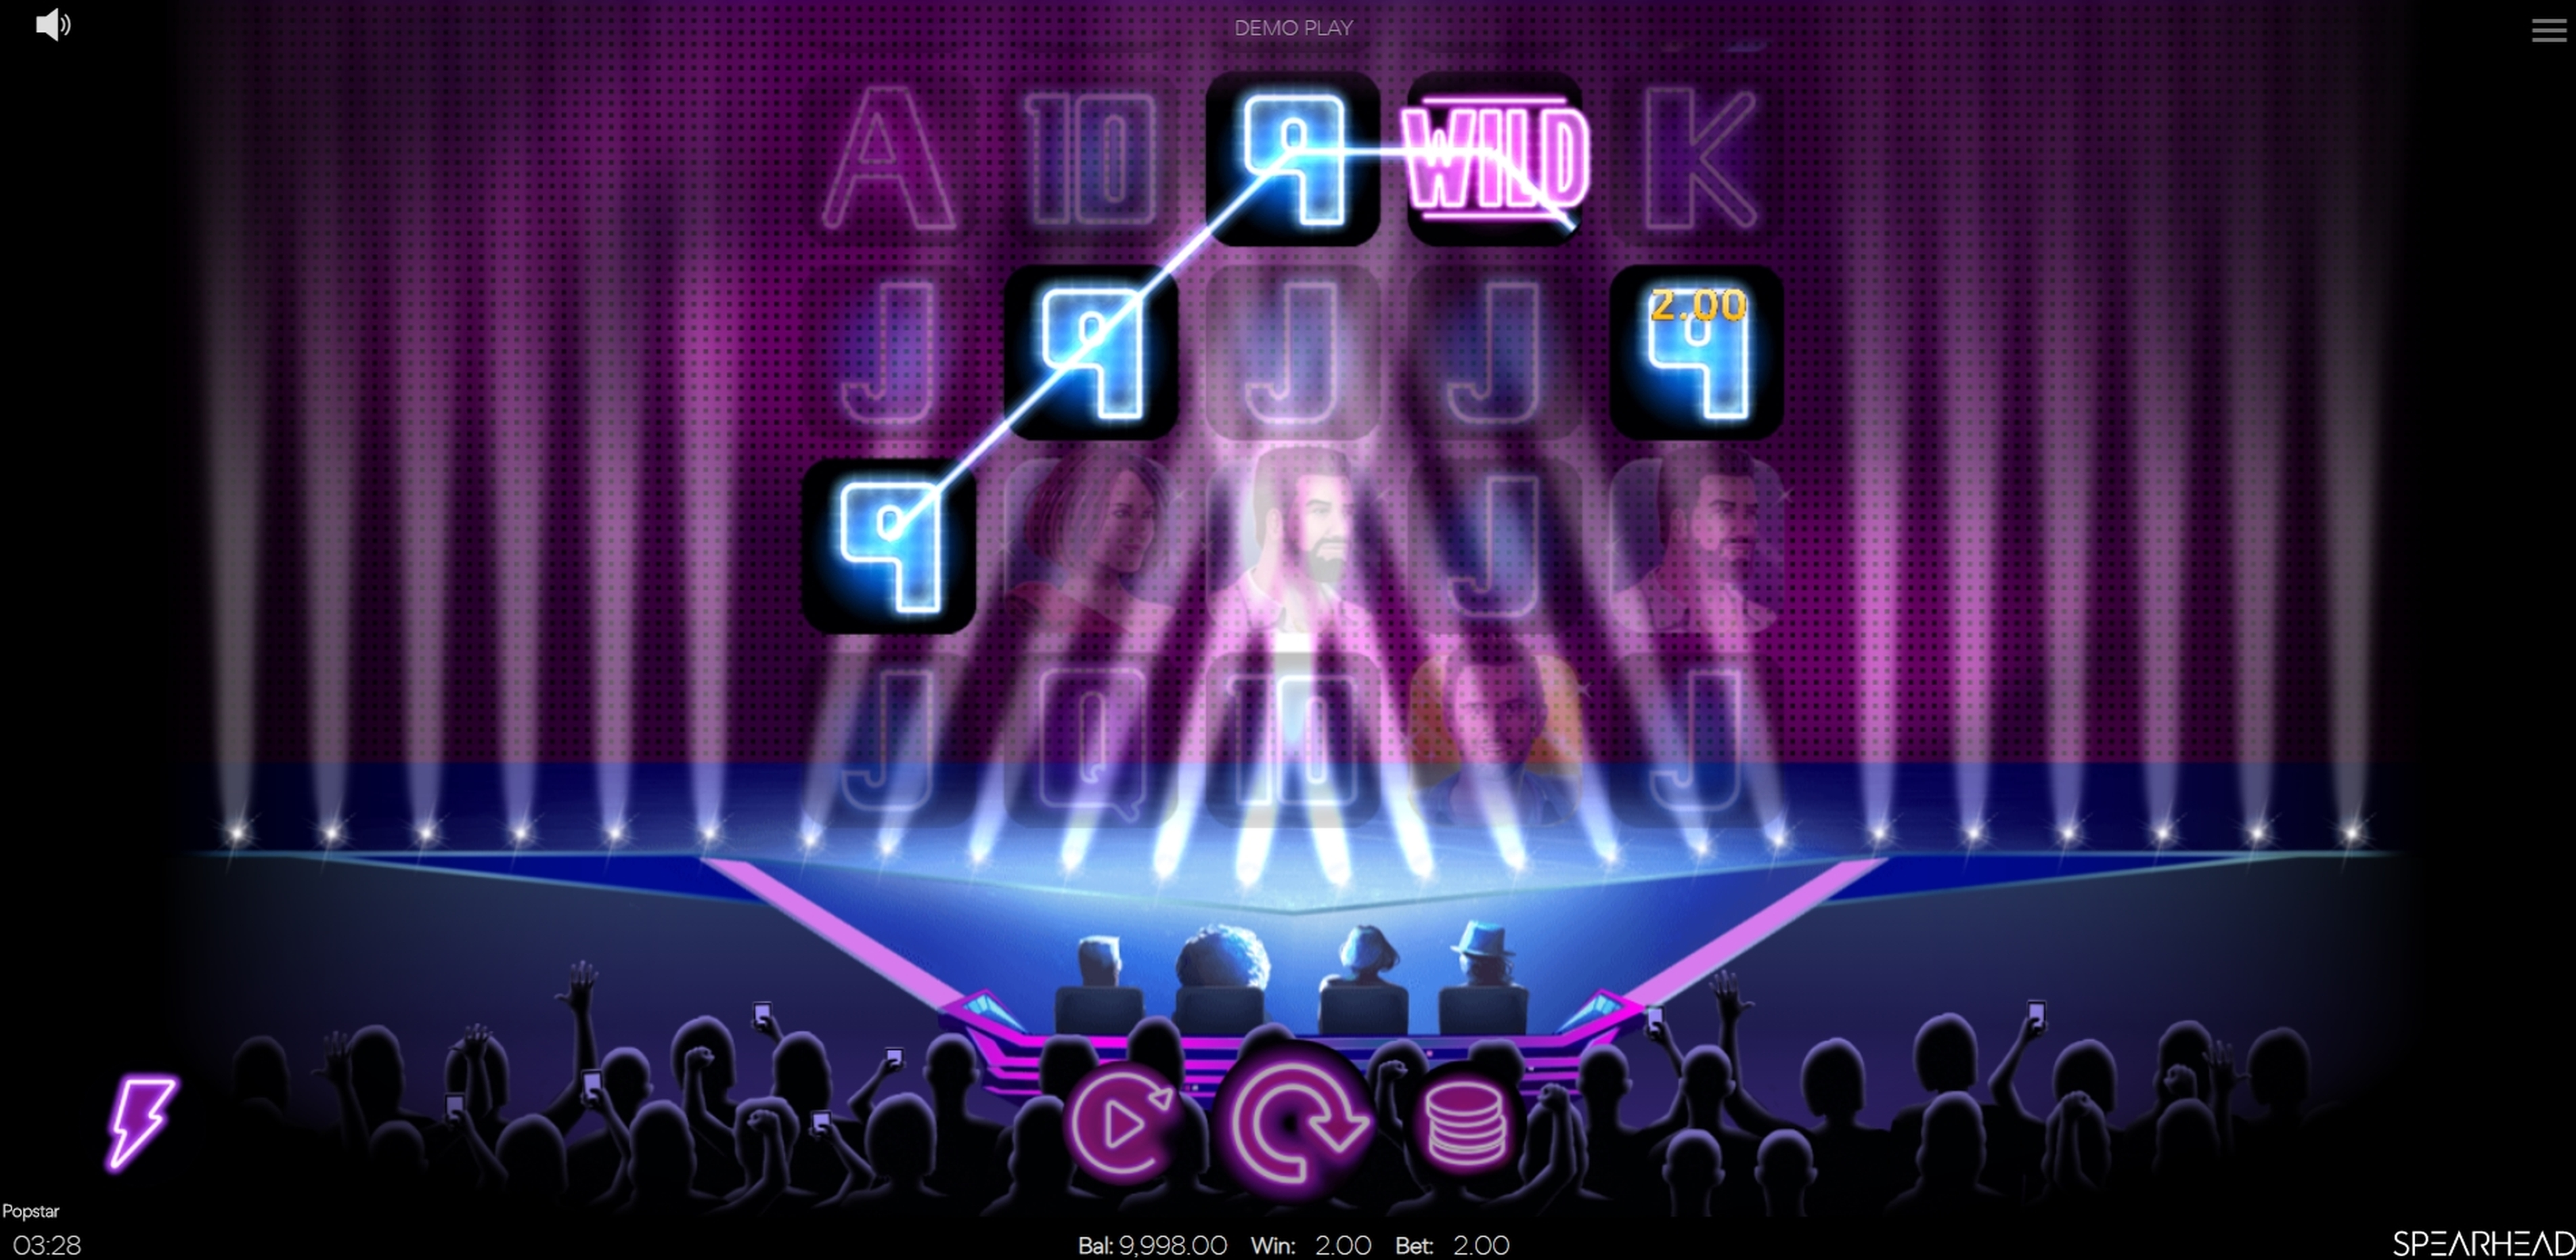 Win Money in Popstar Free Slot Game by Spearhead Studios